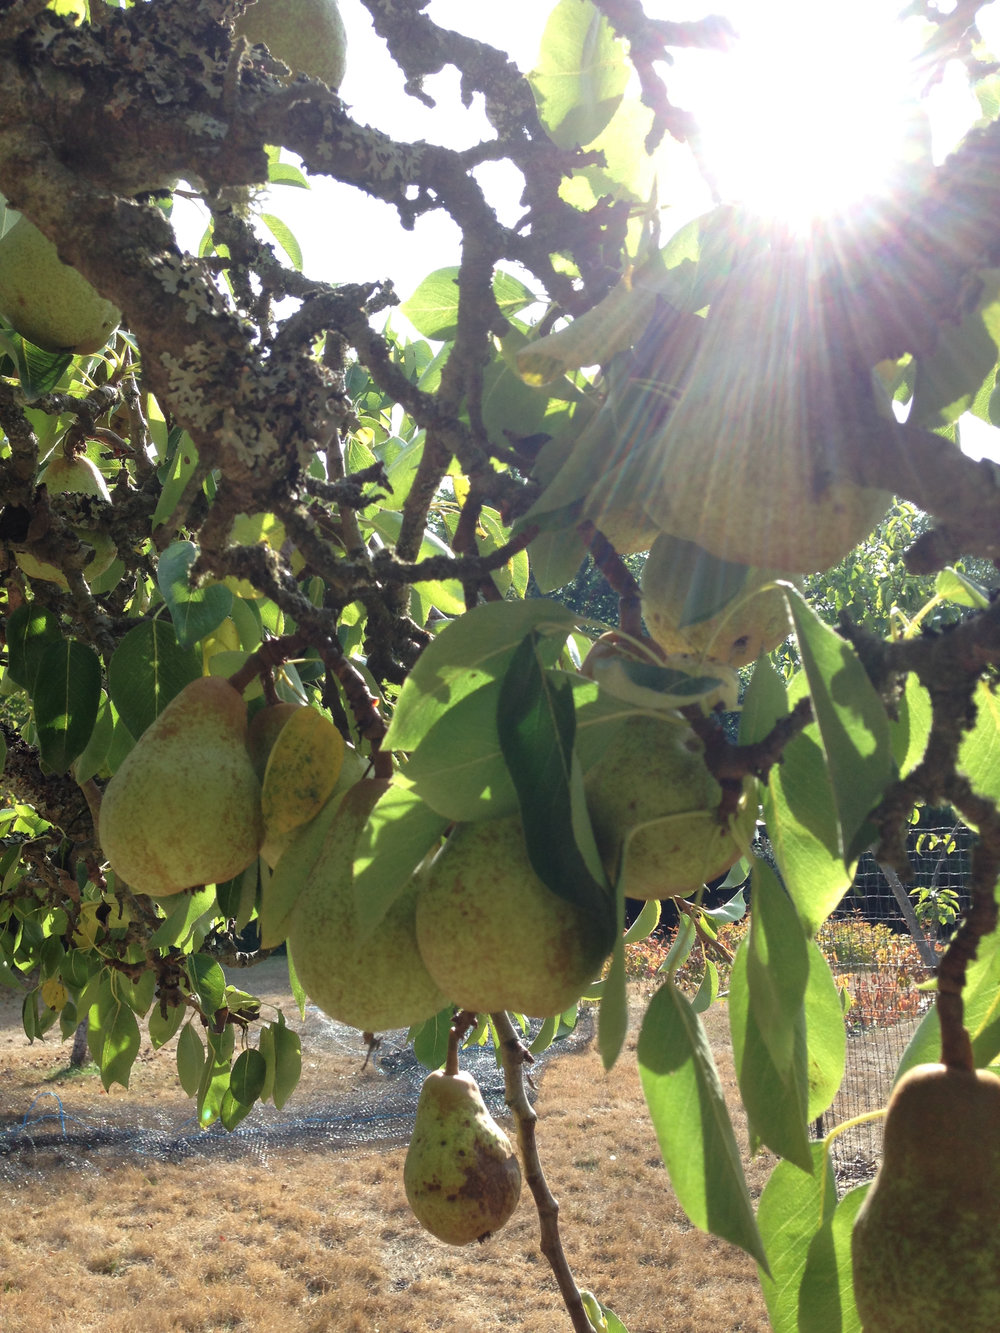 pears on trees.jpg